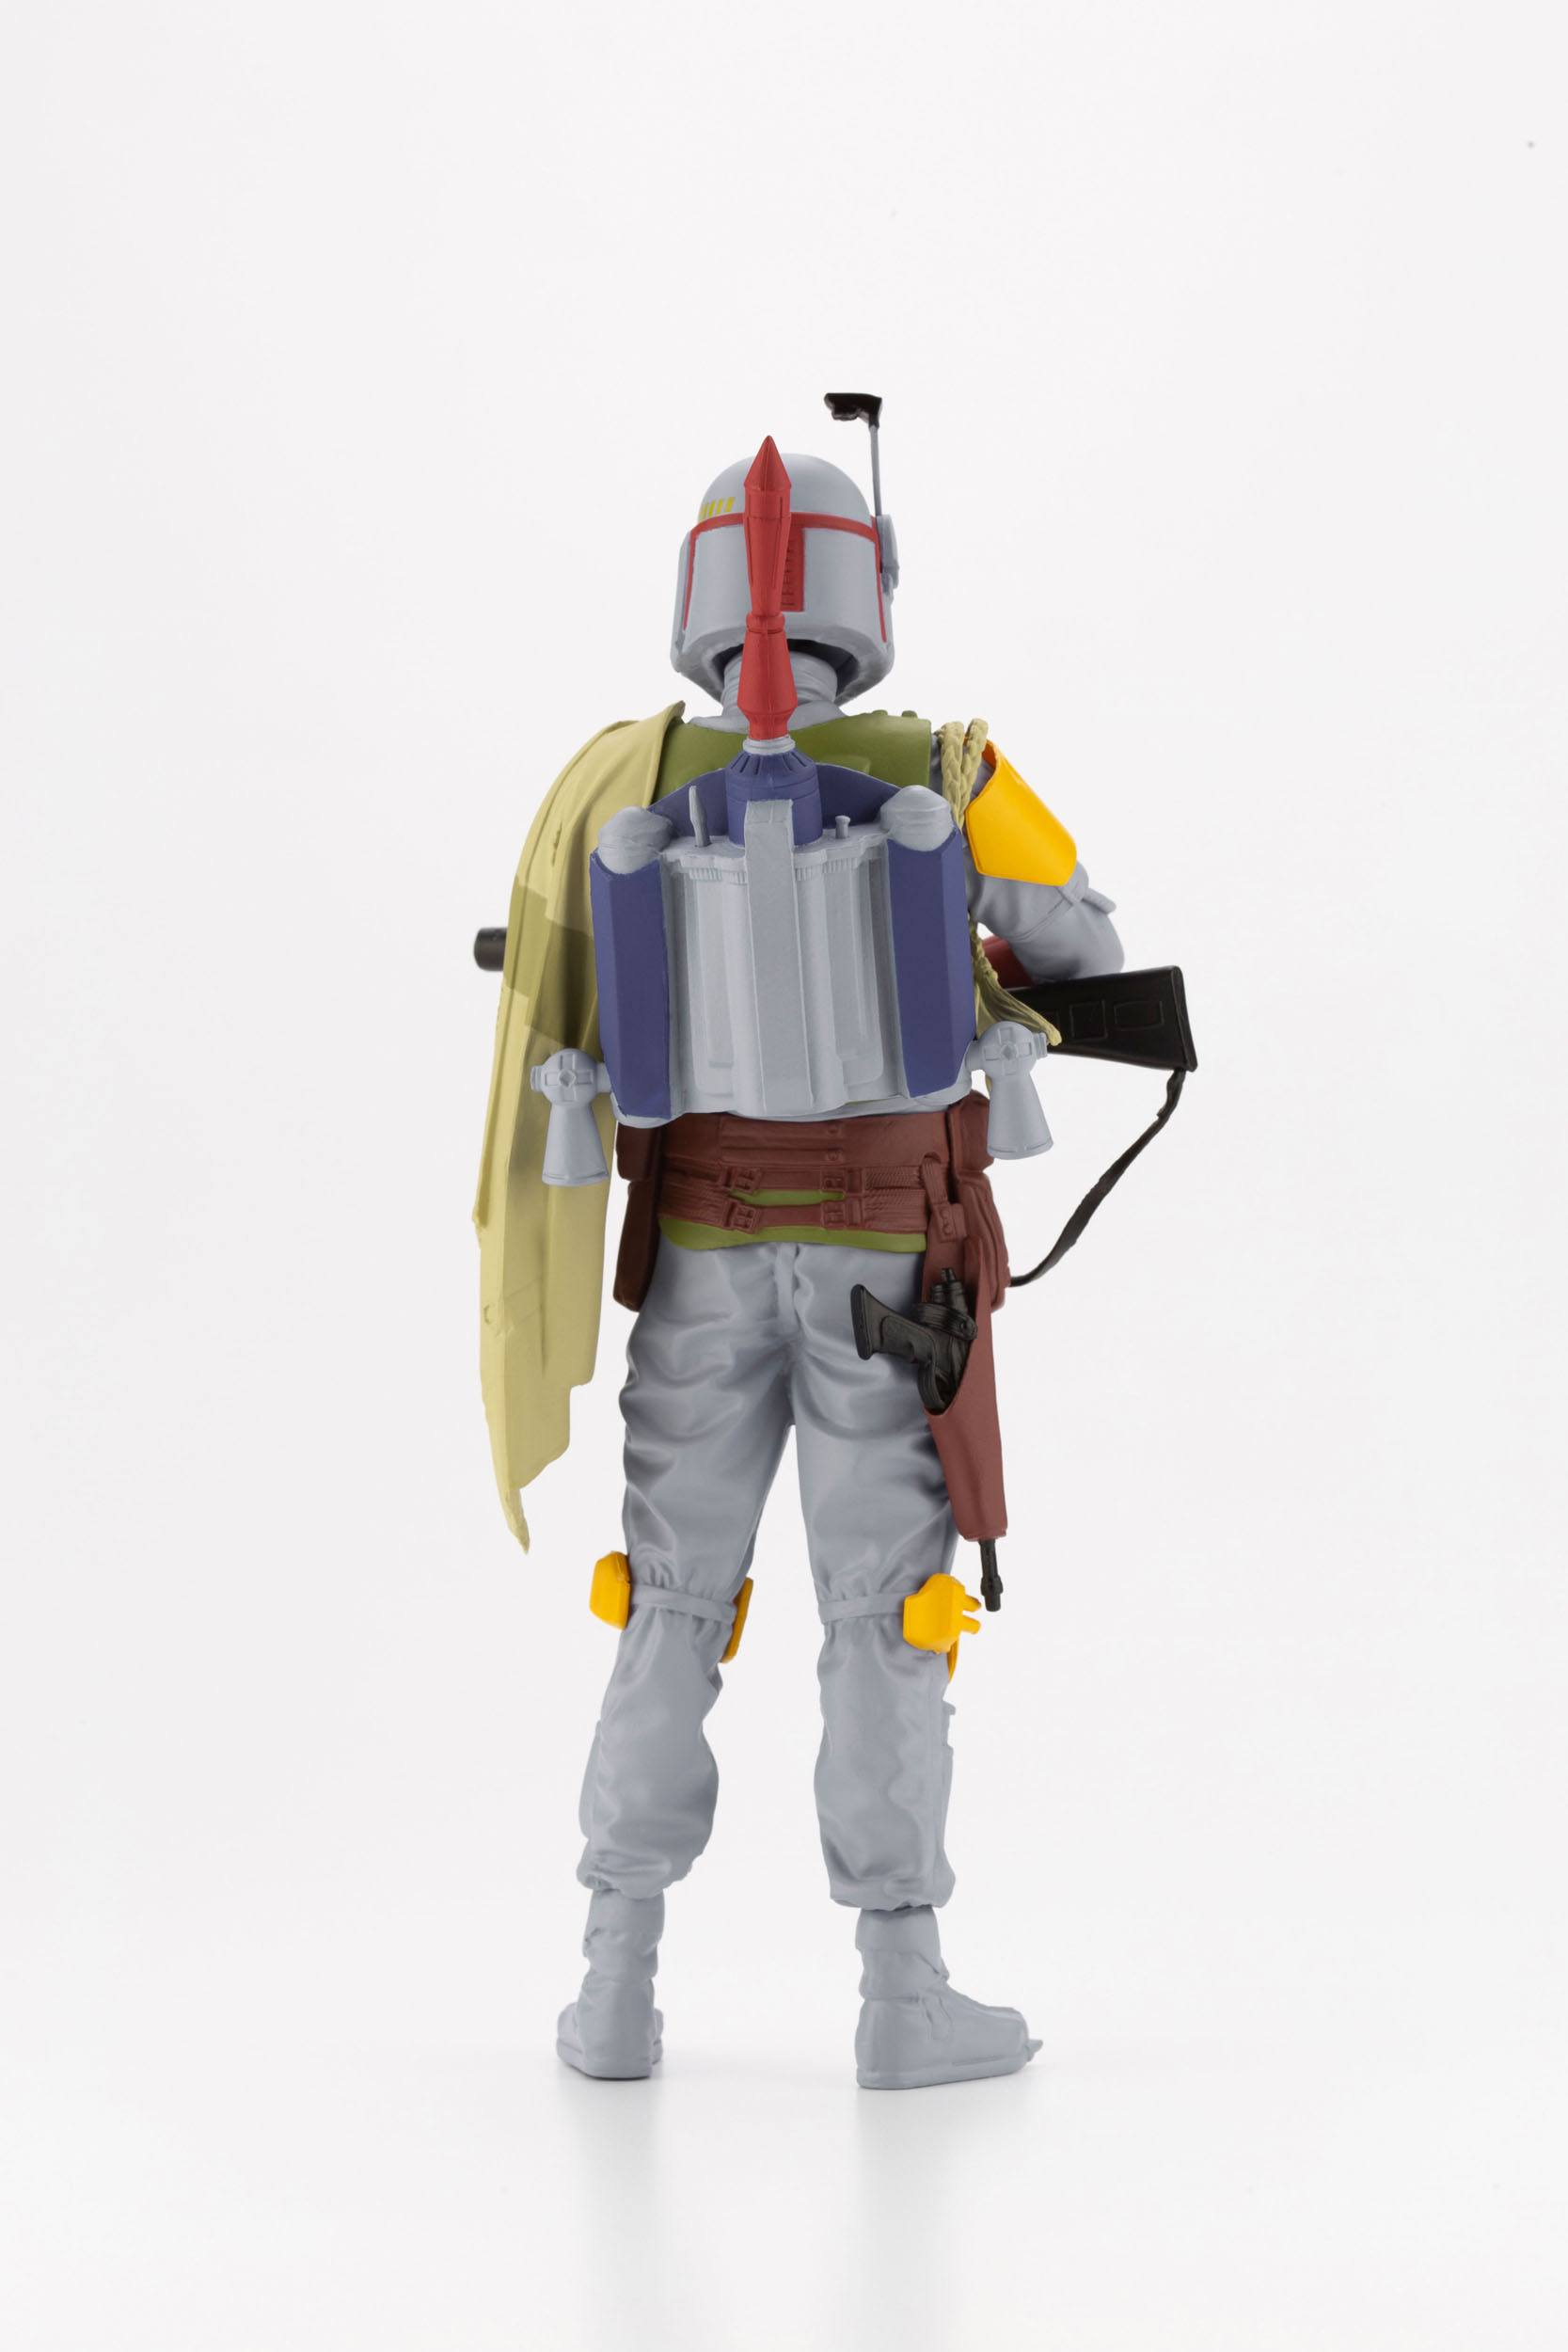 Star Wars Episode V ARTFX+ Statue 1/10 Boba Fett Vintage Color Exclusive 19 cm KTOSW180 4934054030859